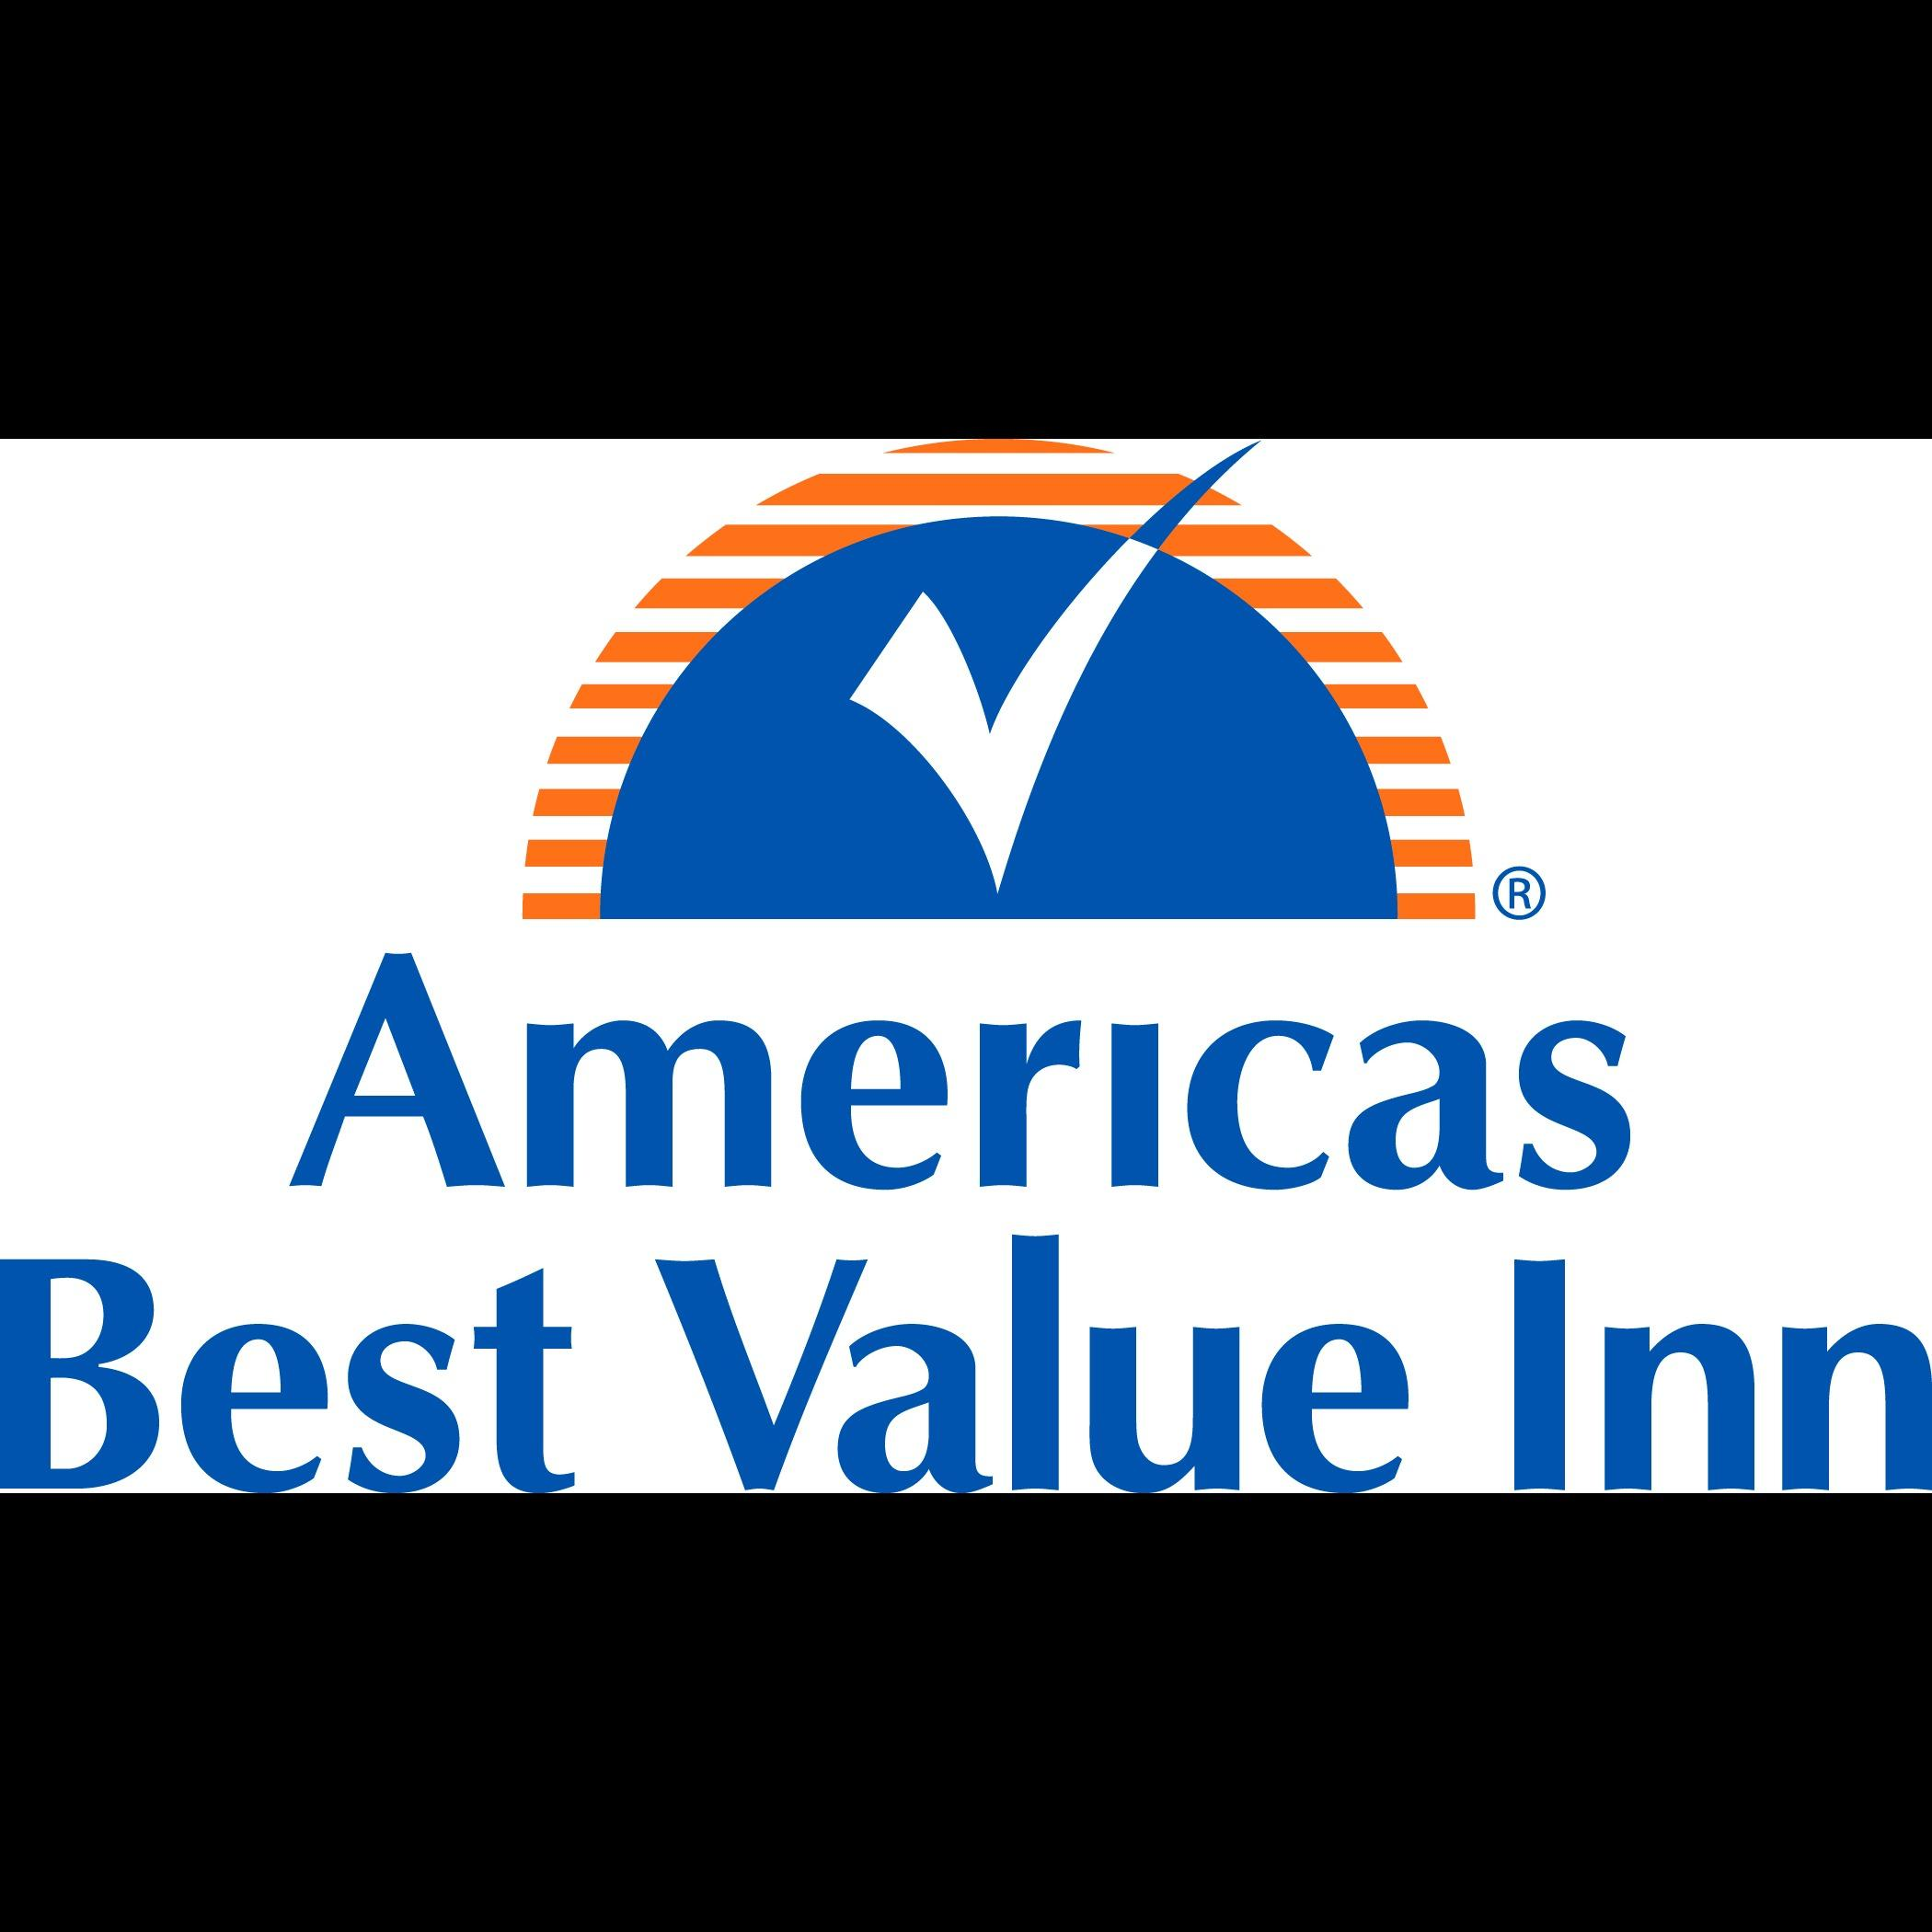 Hotel in TX Austin 78751 Americas Best Value Inn 909 East Koenig Lane  (512)452-4200